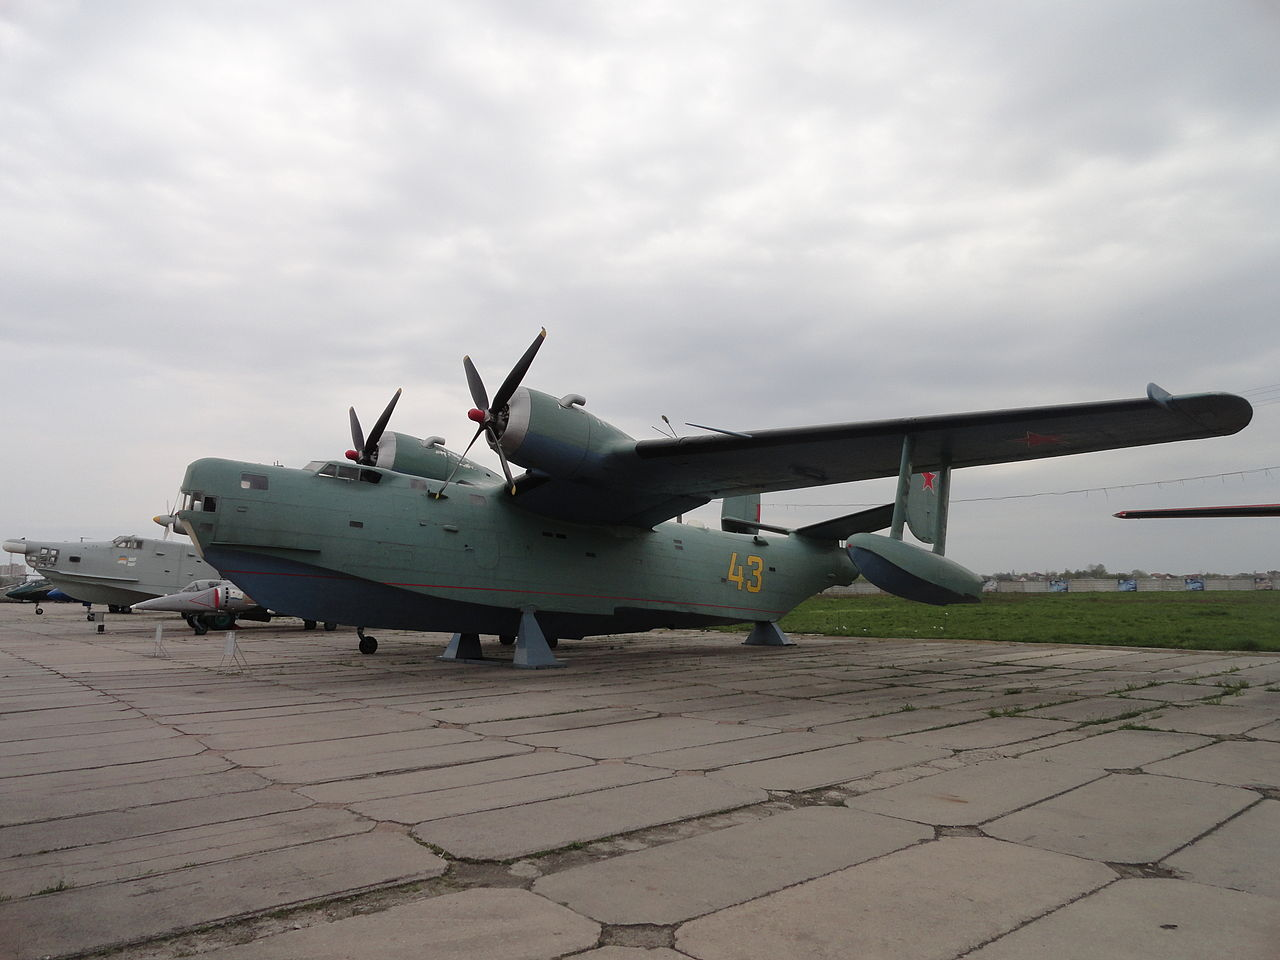 Beriev Be-6 Madge exposé en Ukraine